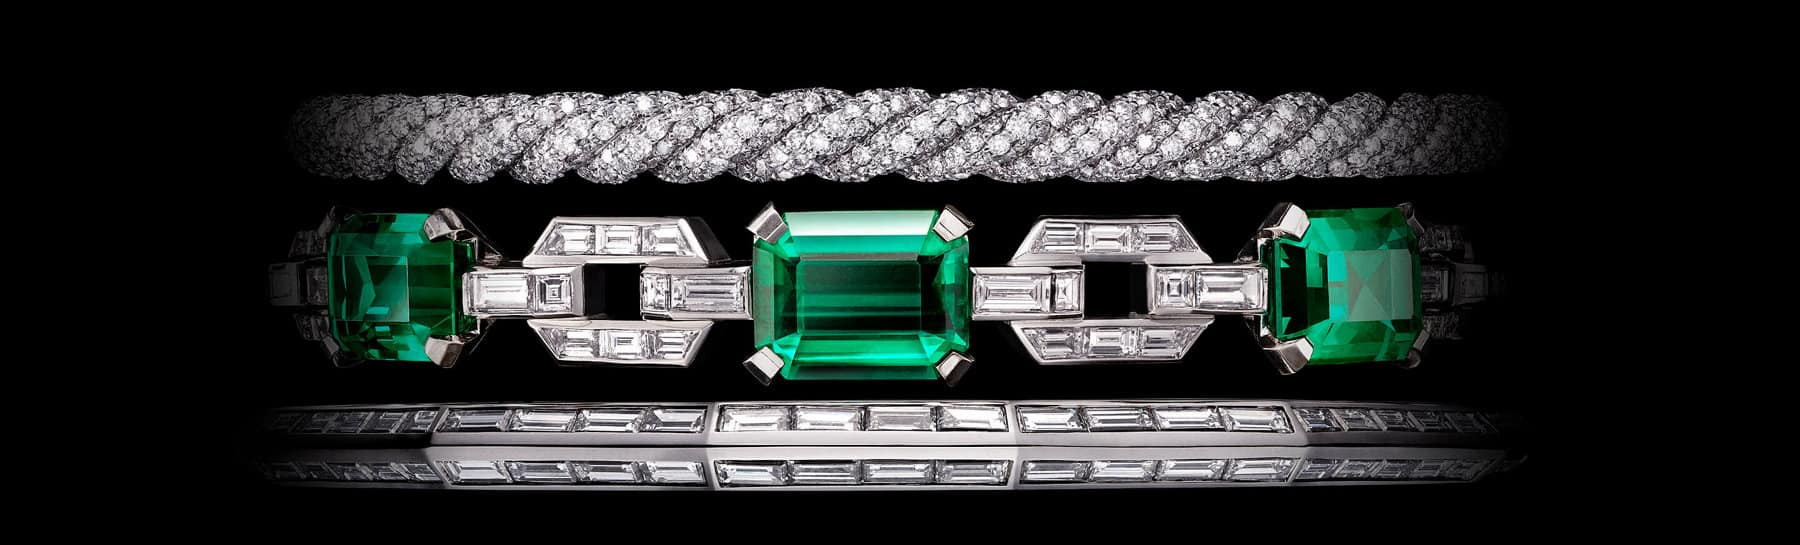 A color photo shows a close-up of the central portion of a David Yurman High Jewelry Stax three-row bracelet displayed against a black background. The jewelry is crafted from 18K white gold and is fully set with three large, emerald-cut Colombian emeralds and brilliant-, baguette- and custom-cut white diamonds.